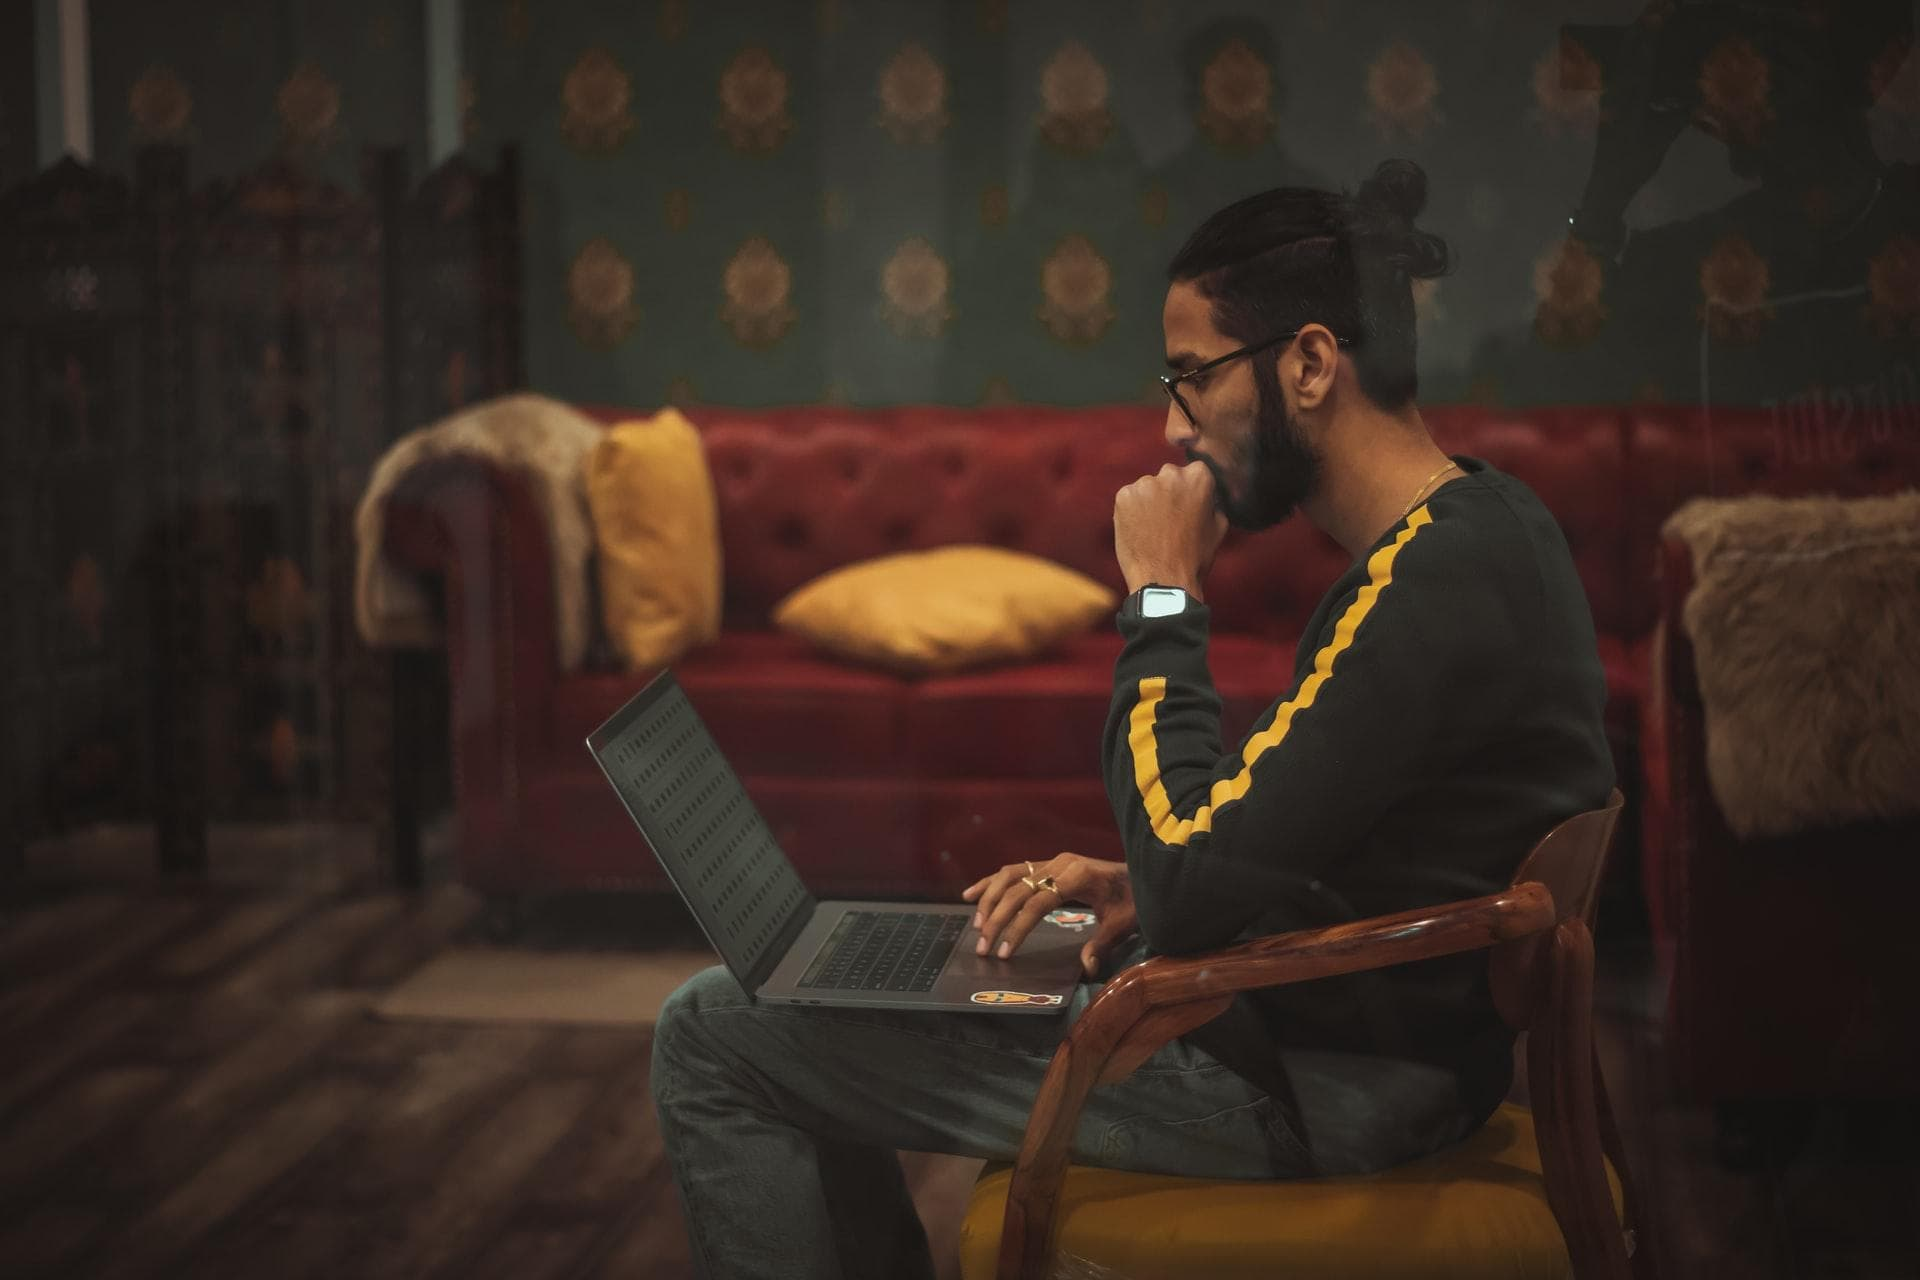 man sitting on wooden chair while using laptop computer on lap